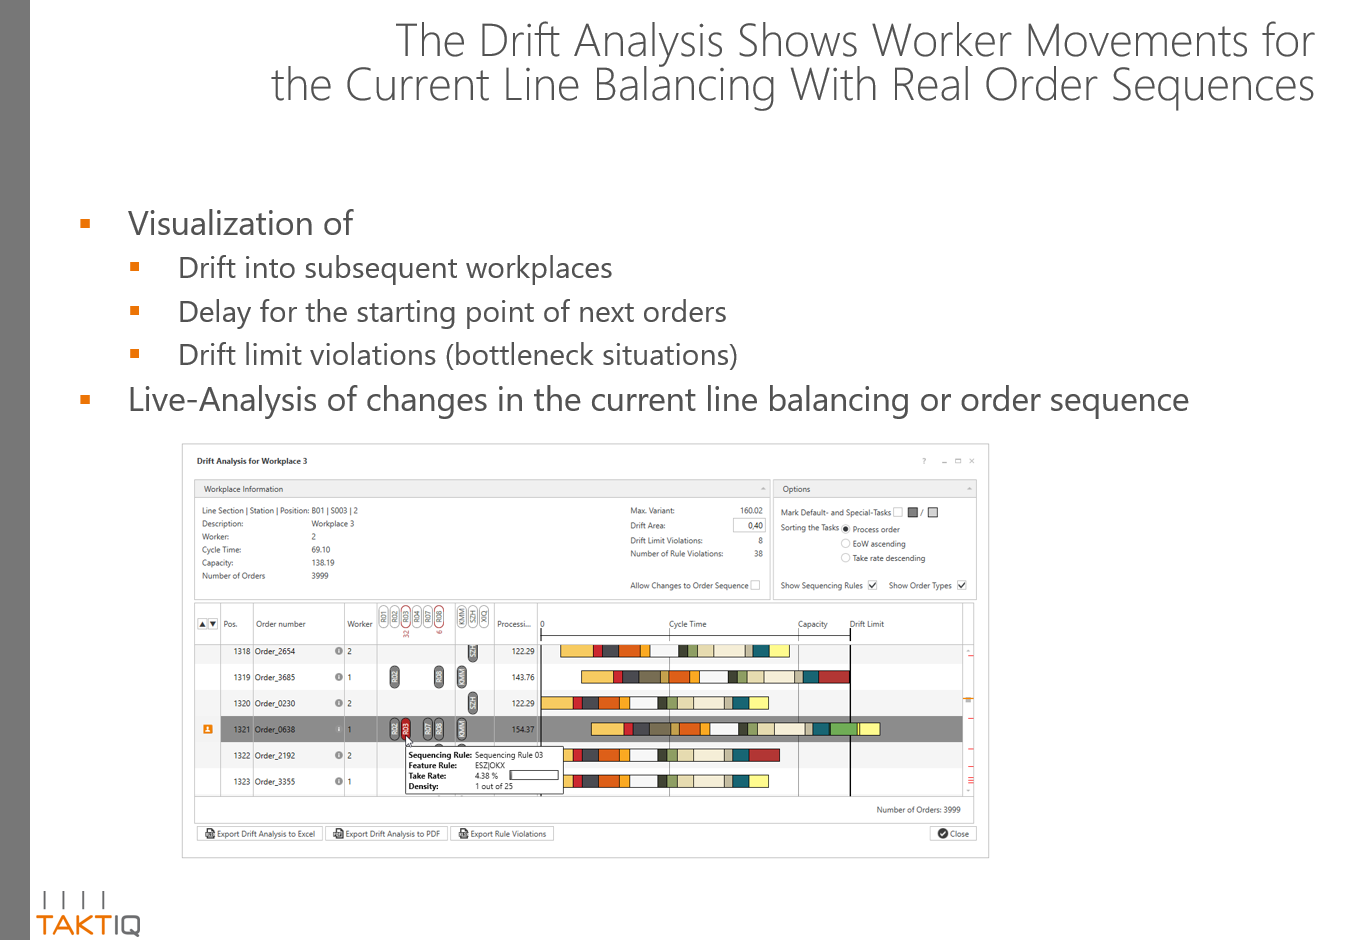 Slide about drift and worker movement for a real order volumen and the latest line balancing